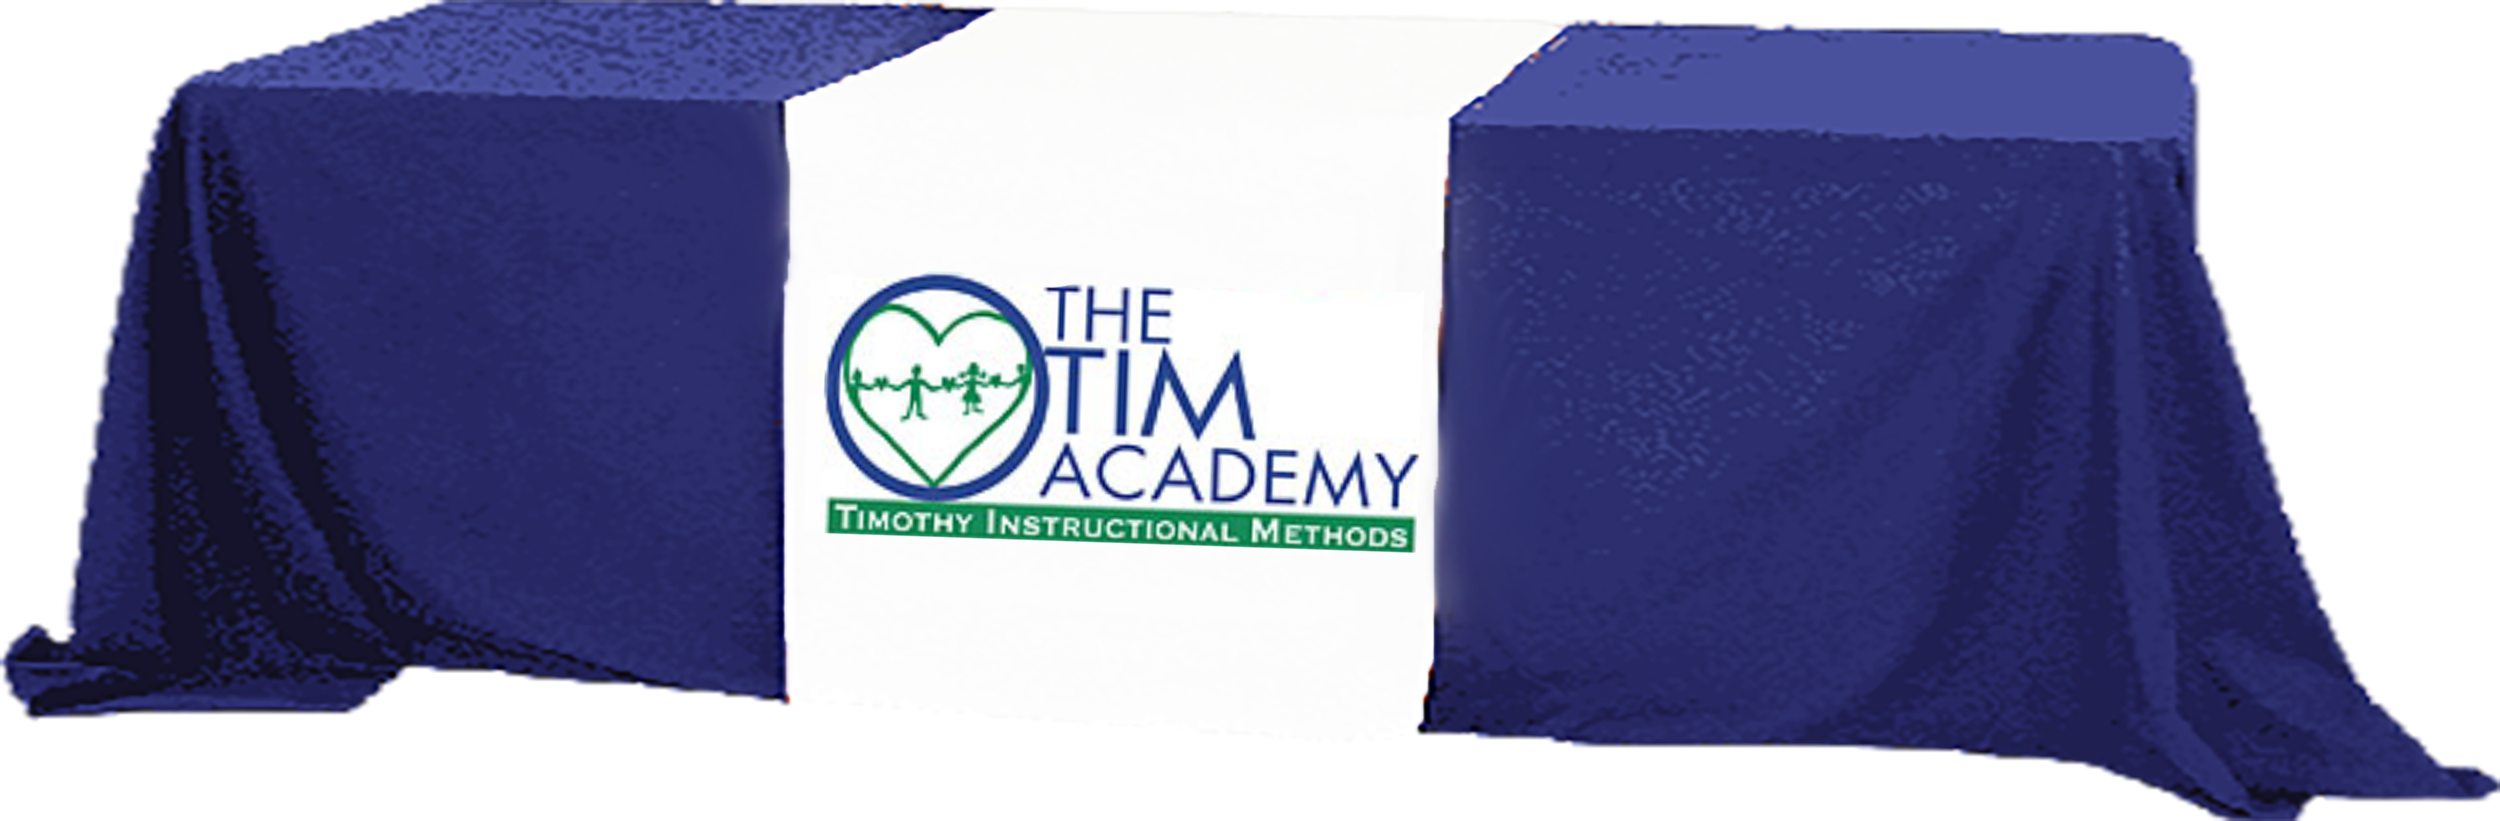 TIM Academy logo on a table cover over a table image